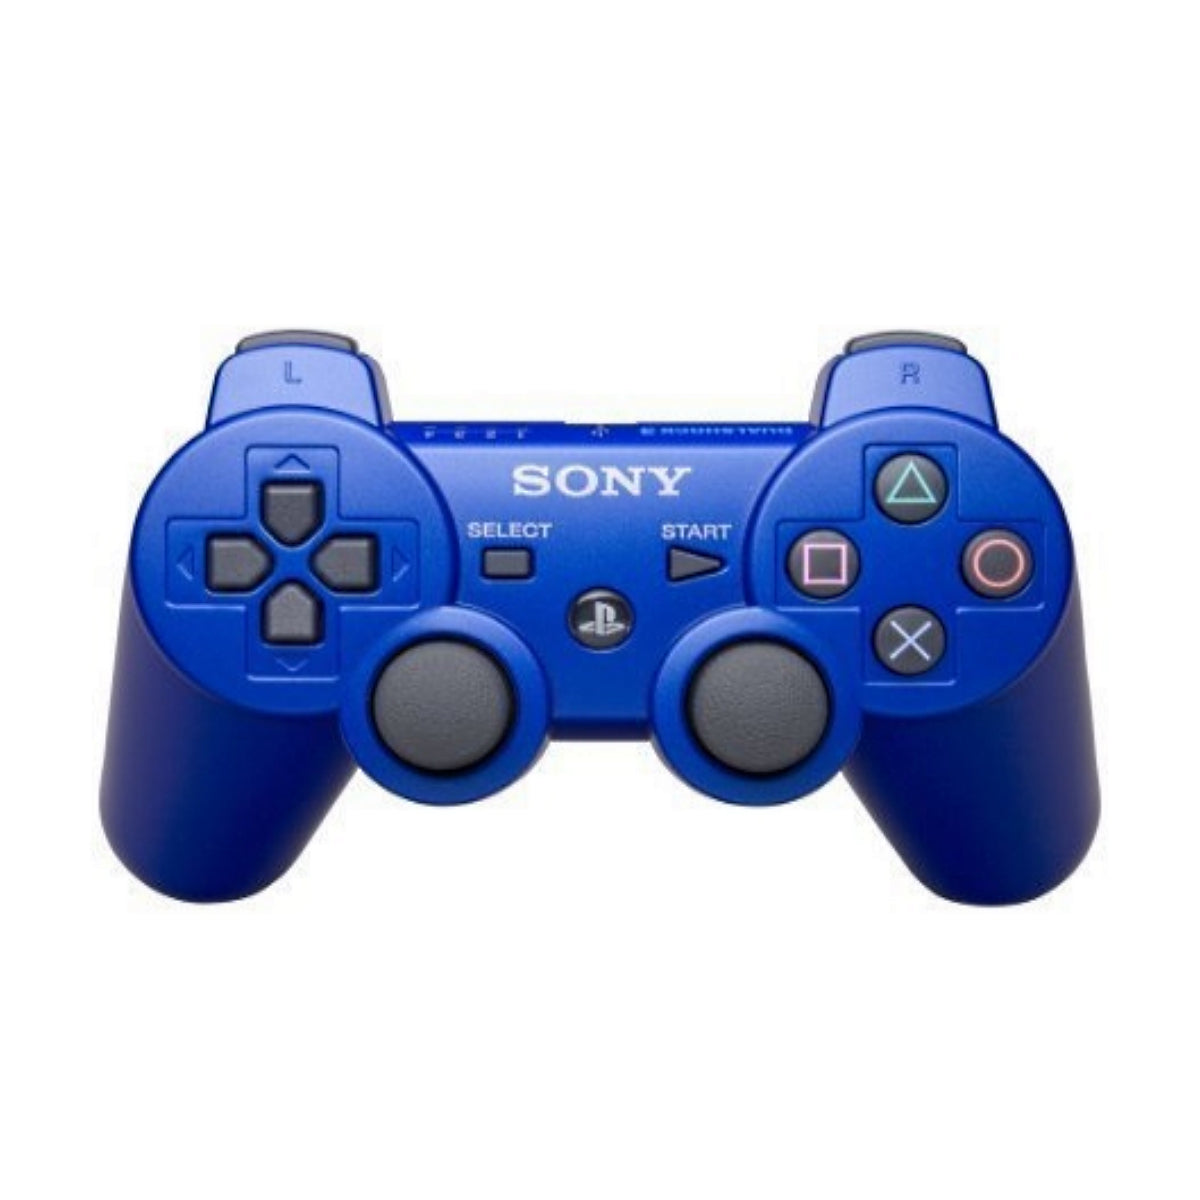 Sony PlayStation 3 DualShock 3 Analog Controller - Metallic Blue - YourGamingShop.com - Buy, Sell, Trade Video Games Online. 120 Day Warranty. Satisfaction Guaranteed.